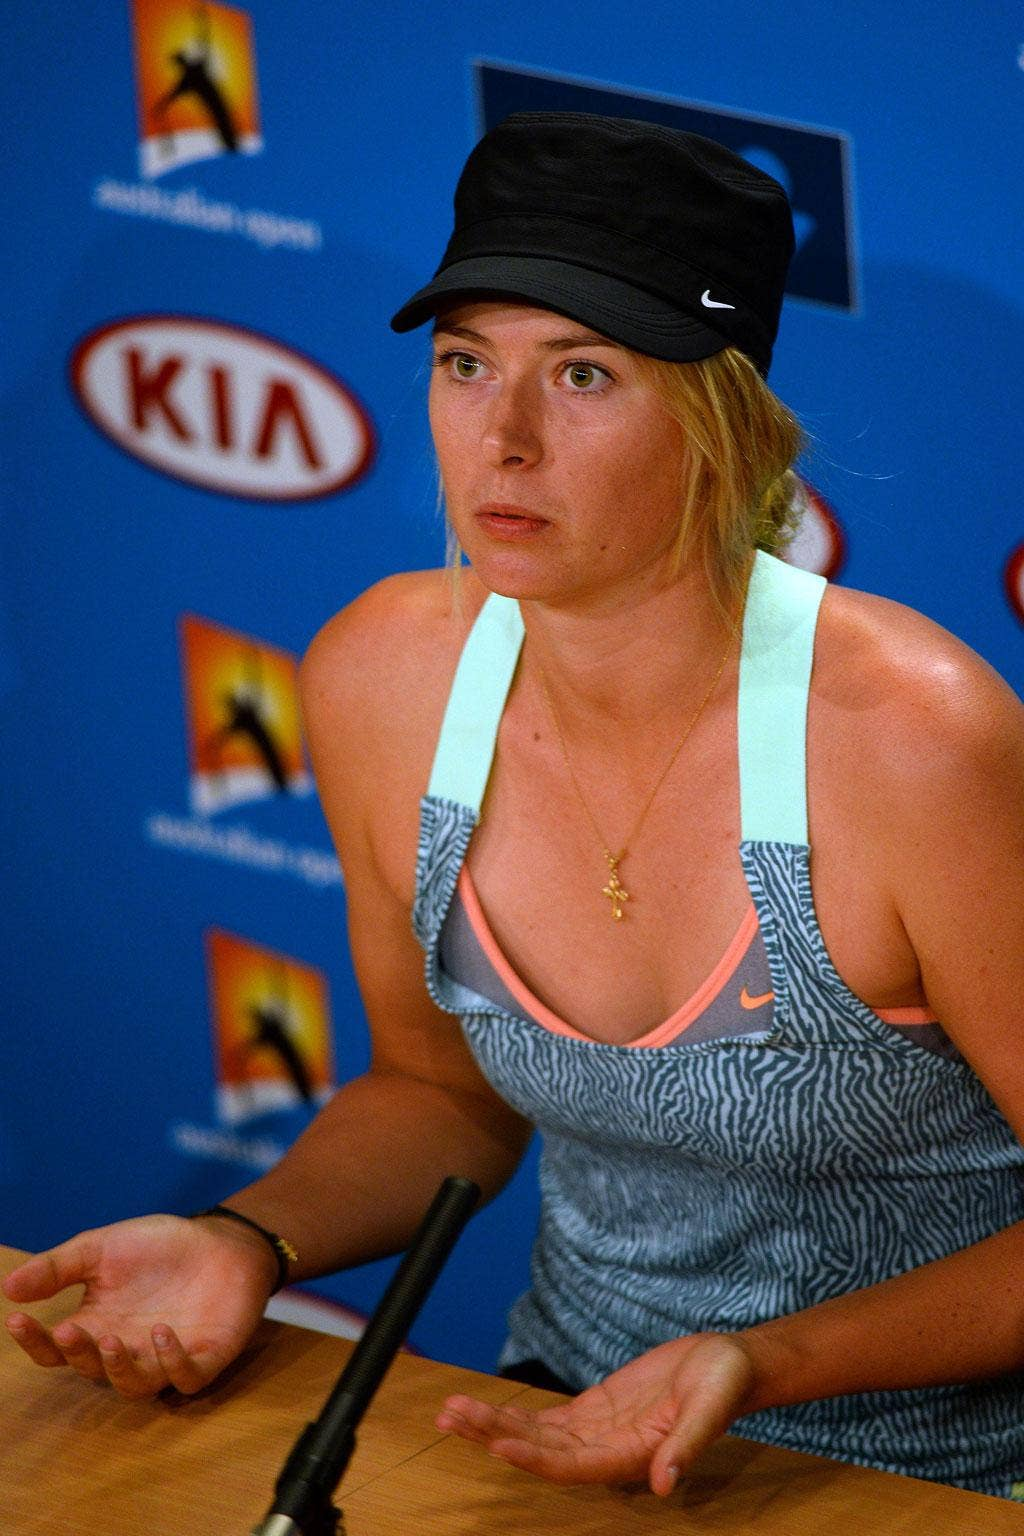 Maria Sharapova has called for clarity over the extreme heat ruling that saw play at the Australian Open suspended